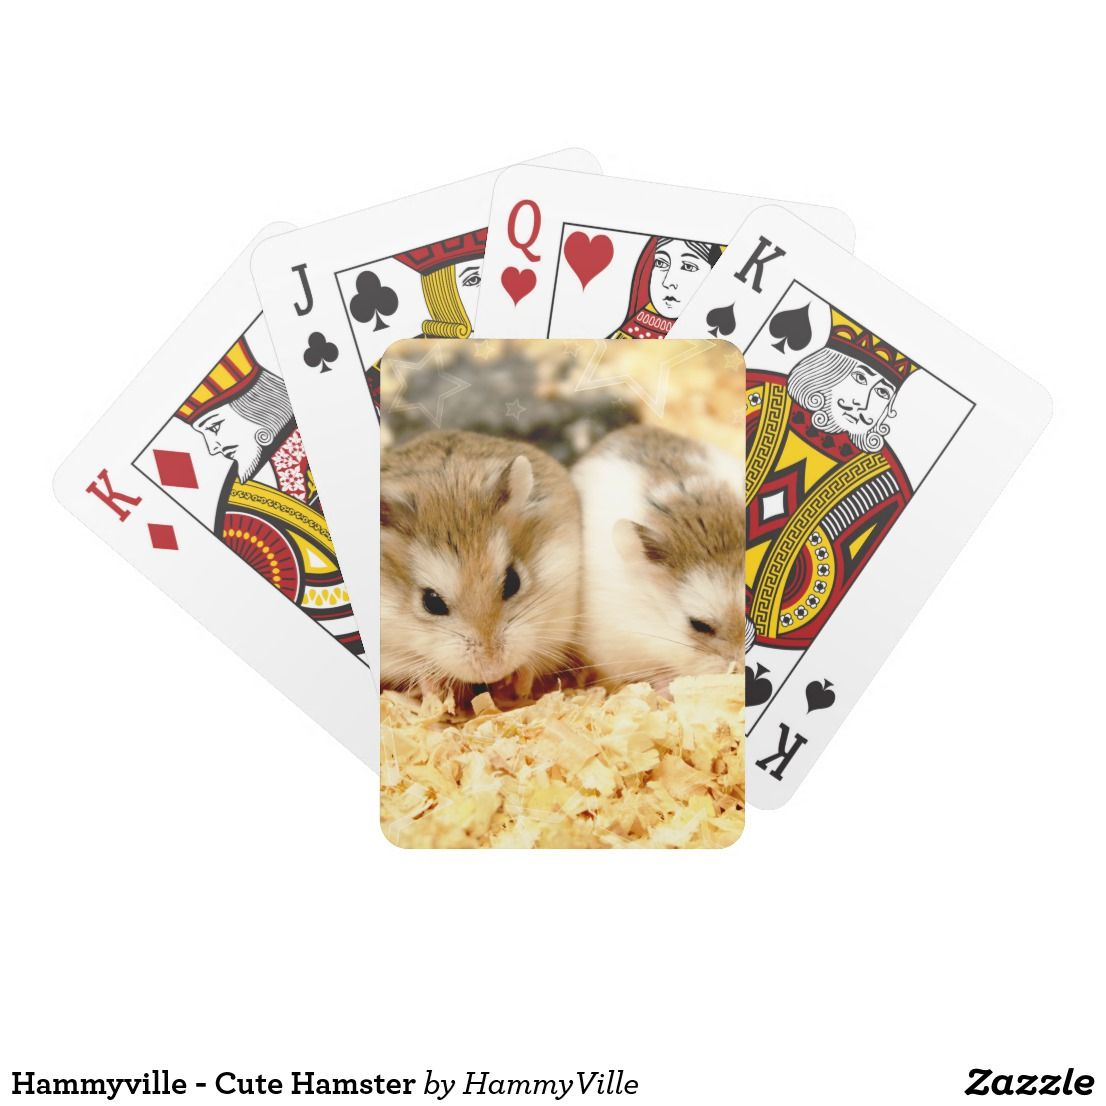 Hammyville Cute Hamster Playing Cards Zazzle Com Cute Hamsters Hamster Cute Animals